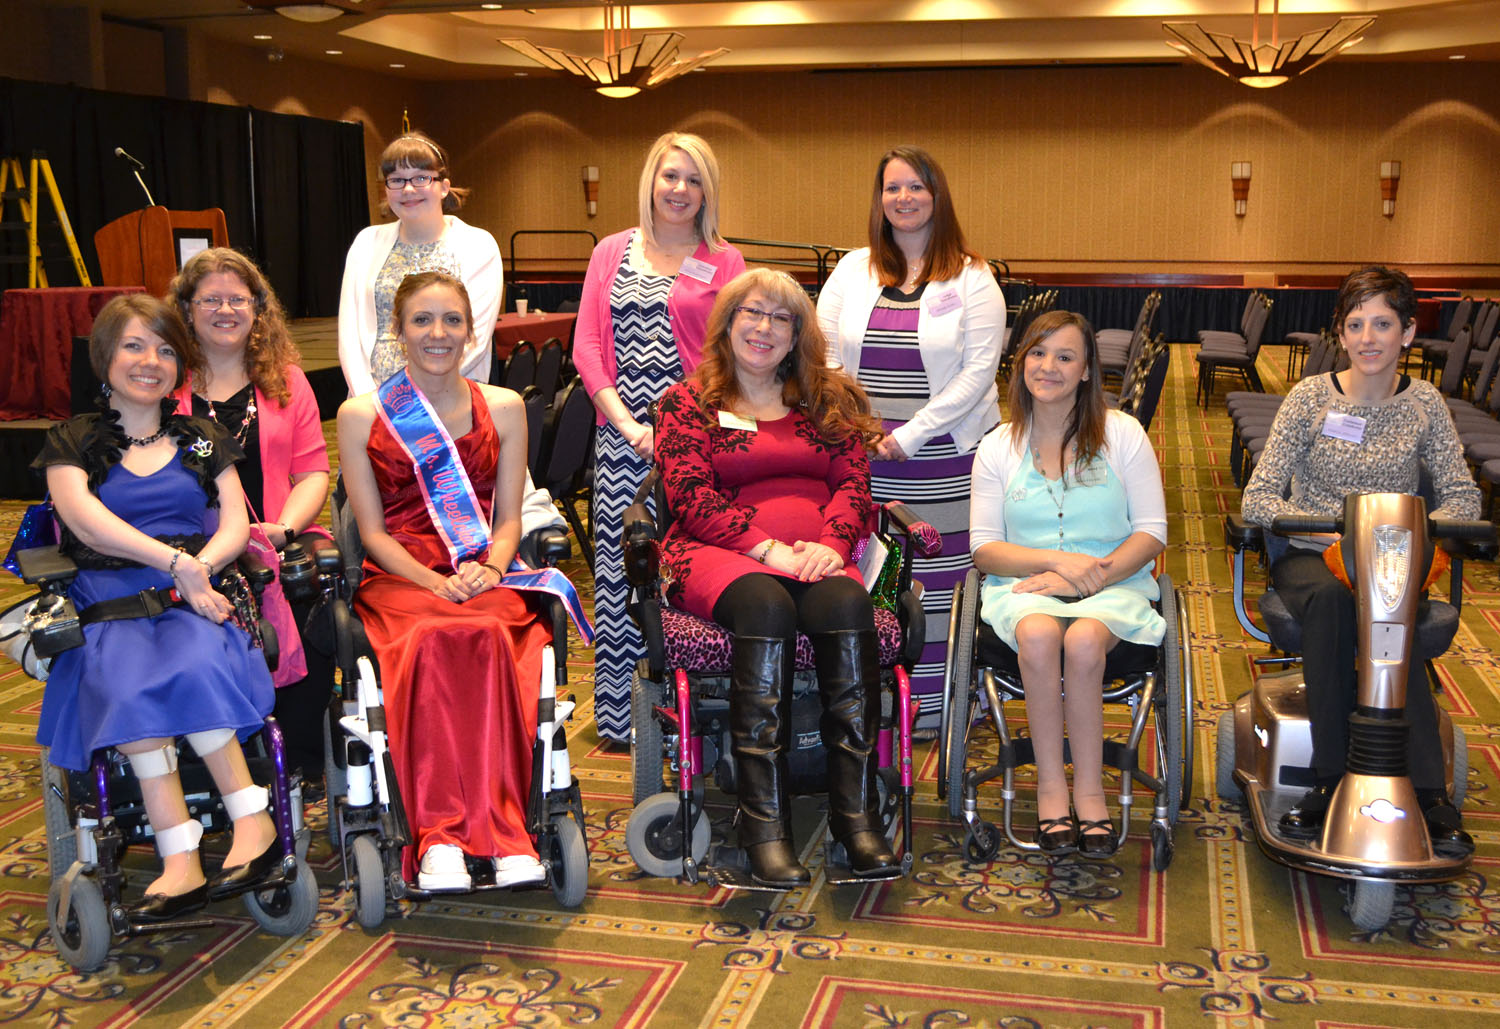 The MWKS steering committee with new titleholder